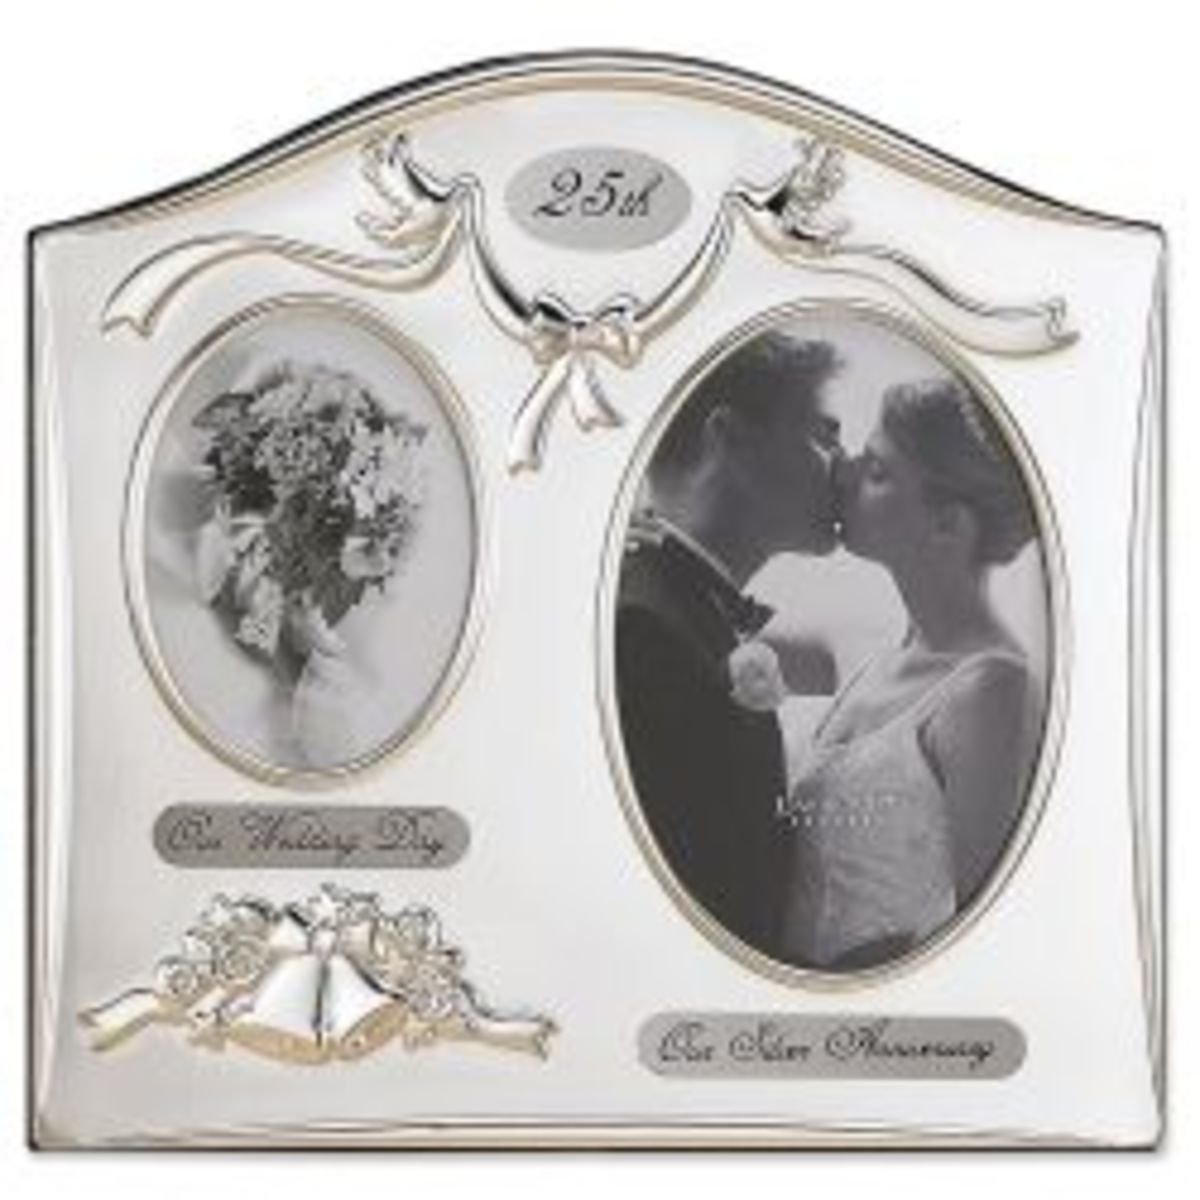 25th anniversary design picture frame - 25th Wedding Anniversary Gifts